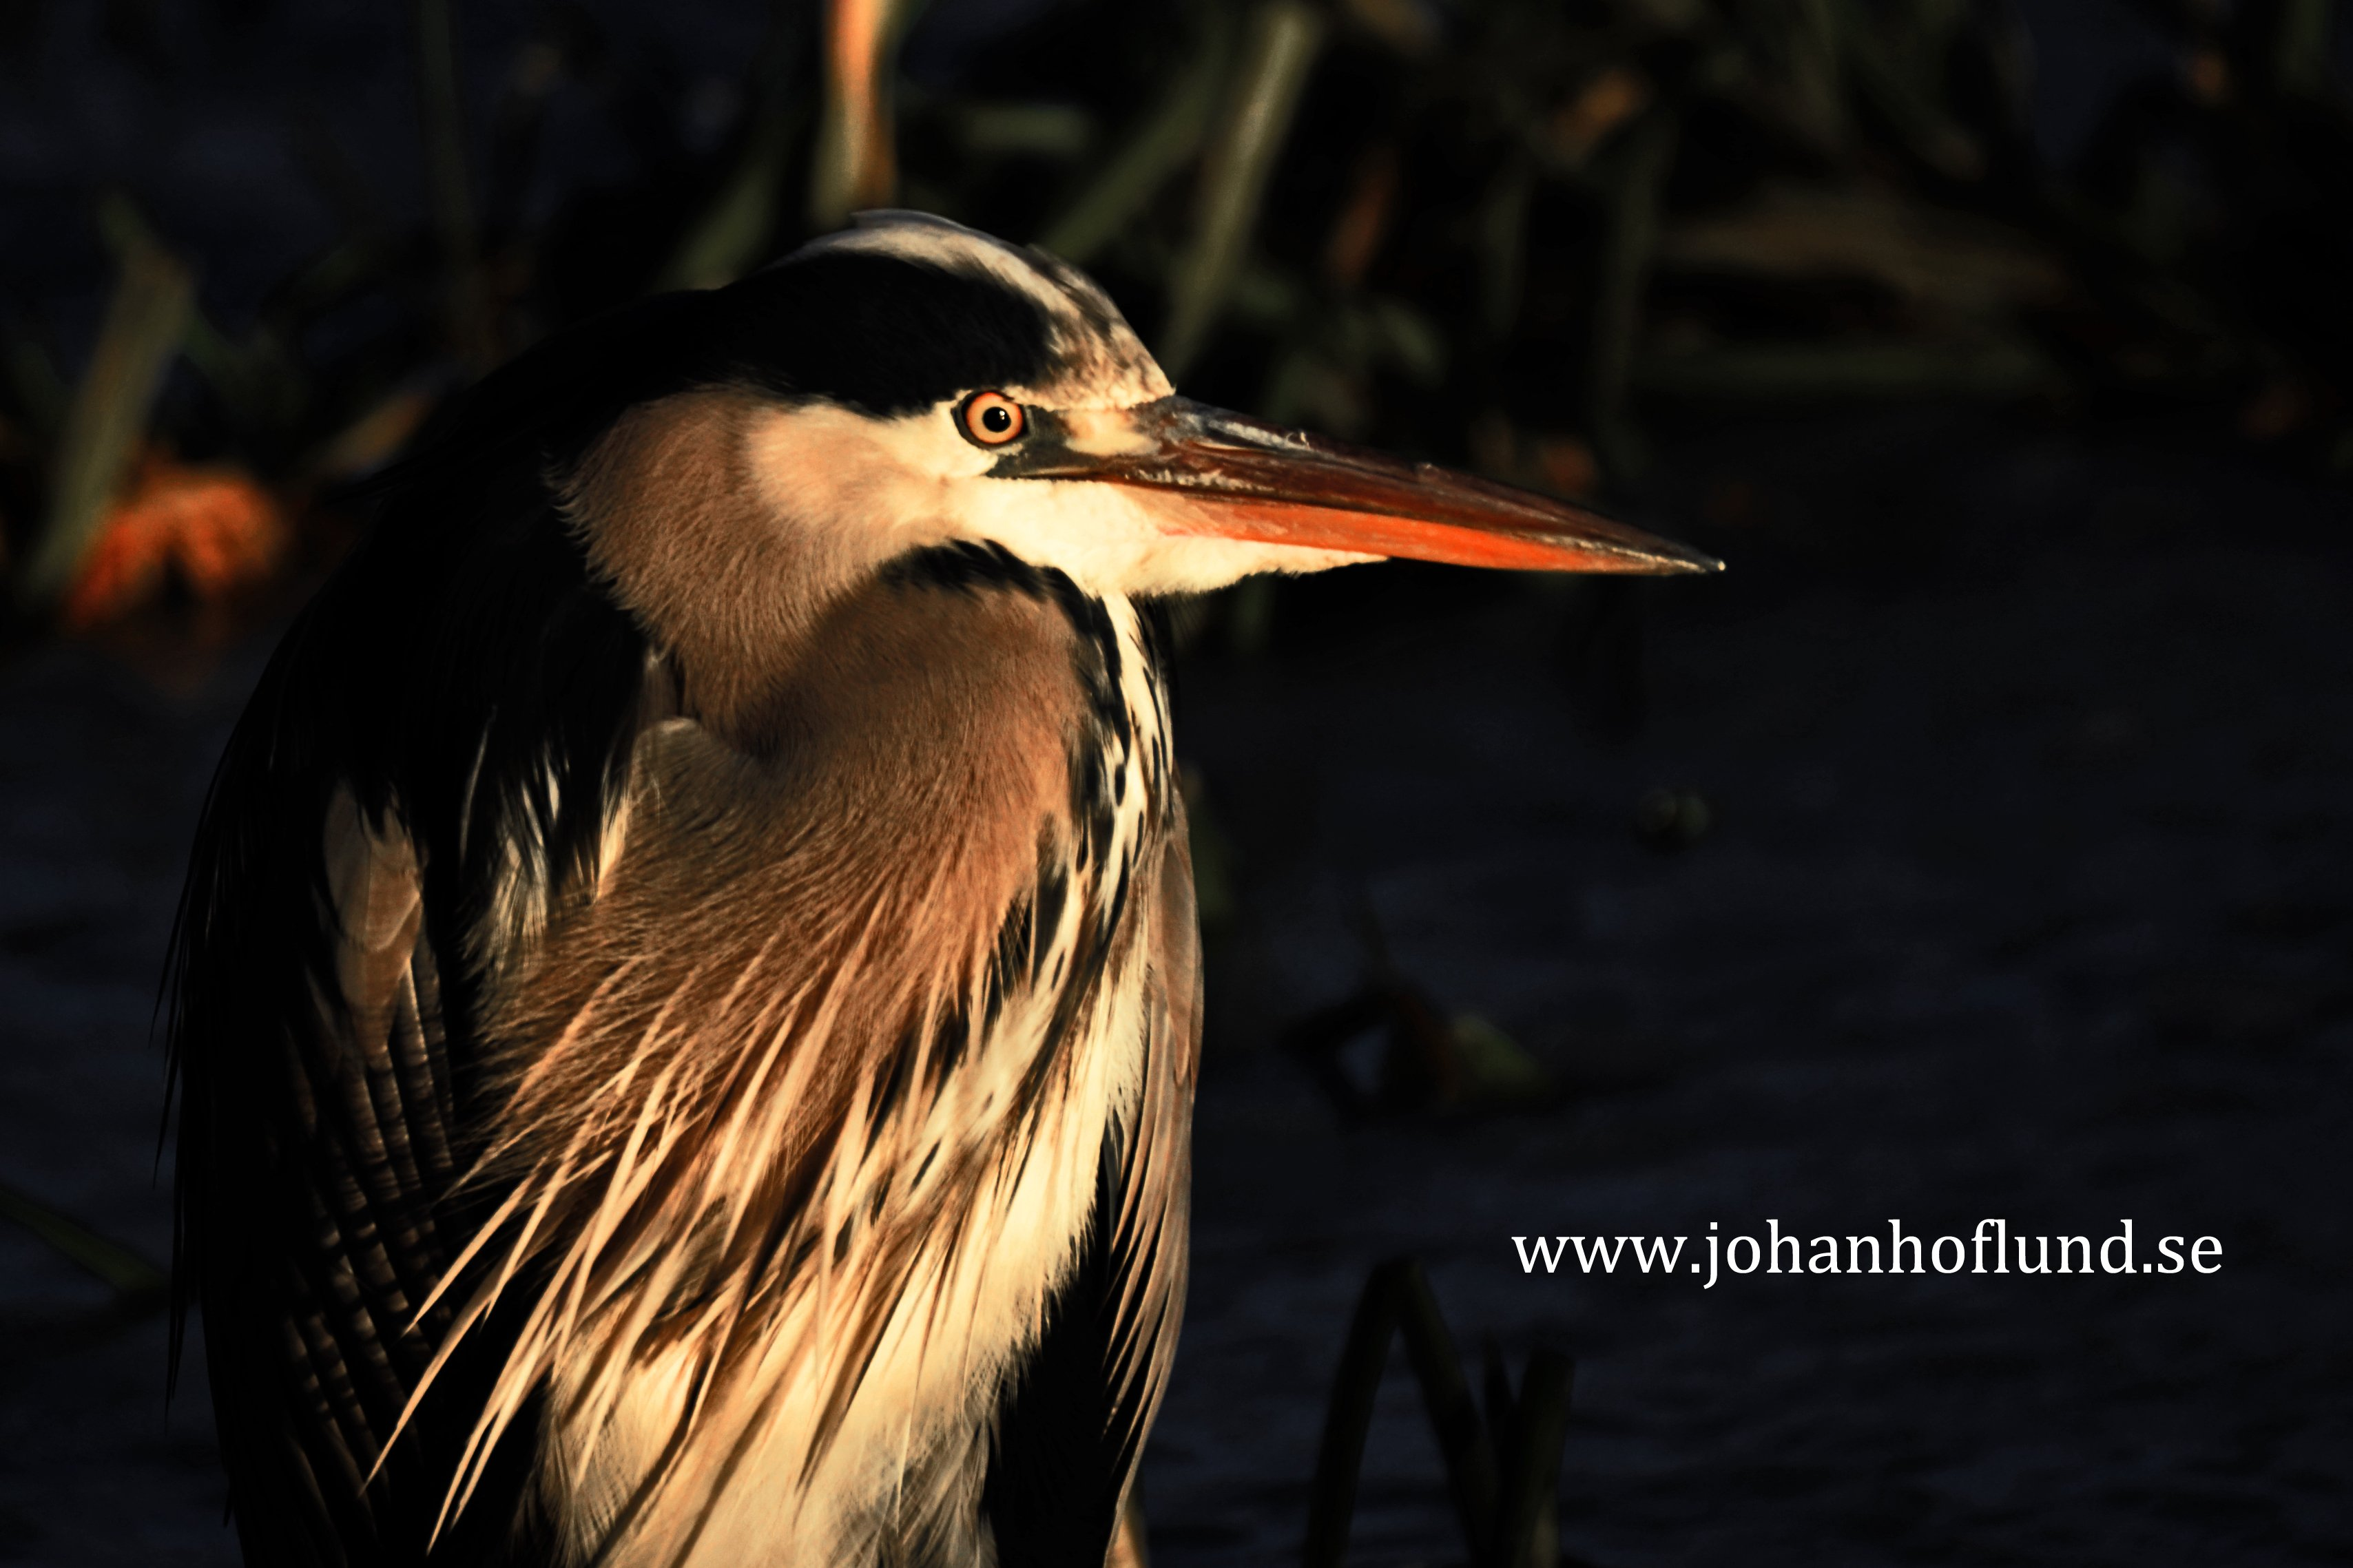 Pale winter sun on the heron